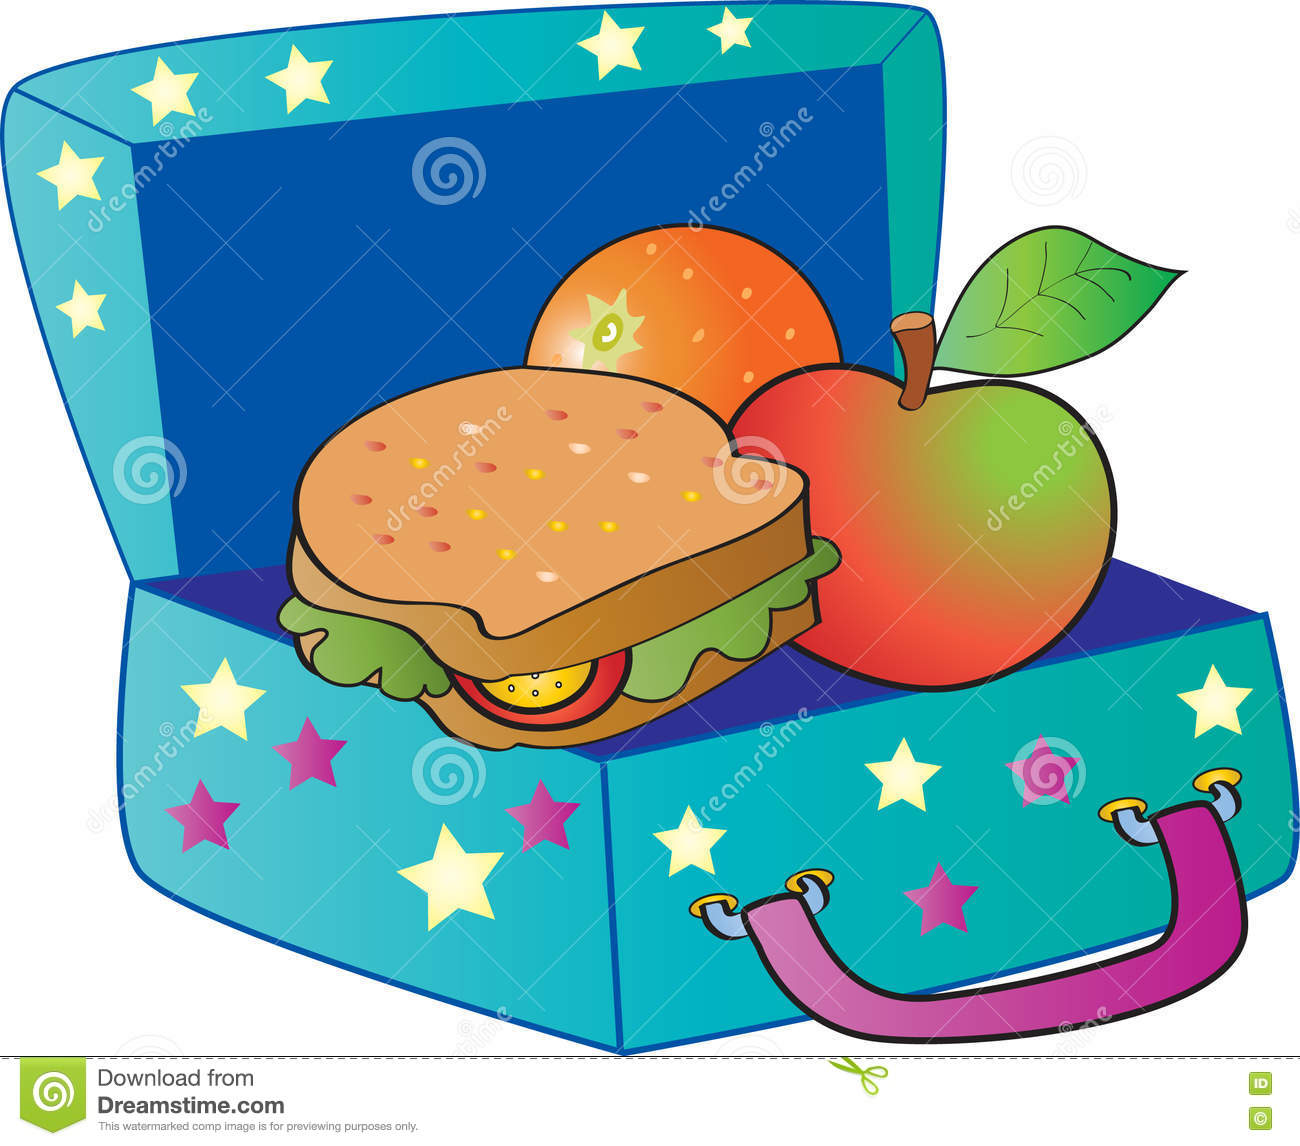 Lunch Box Drawing at PaintingValley.com | Explore collection of ... clipart download